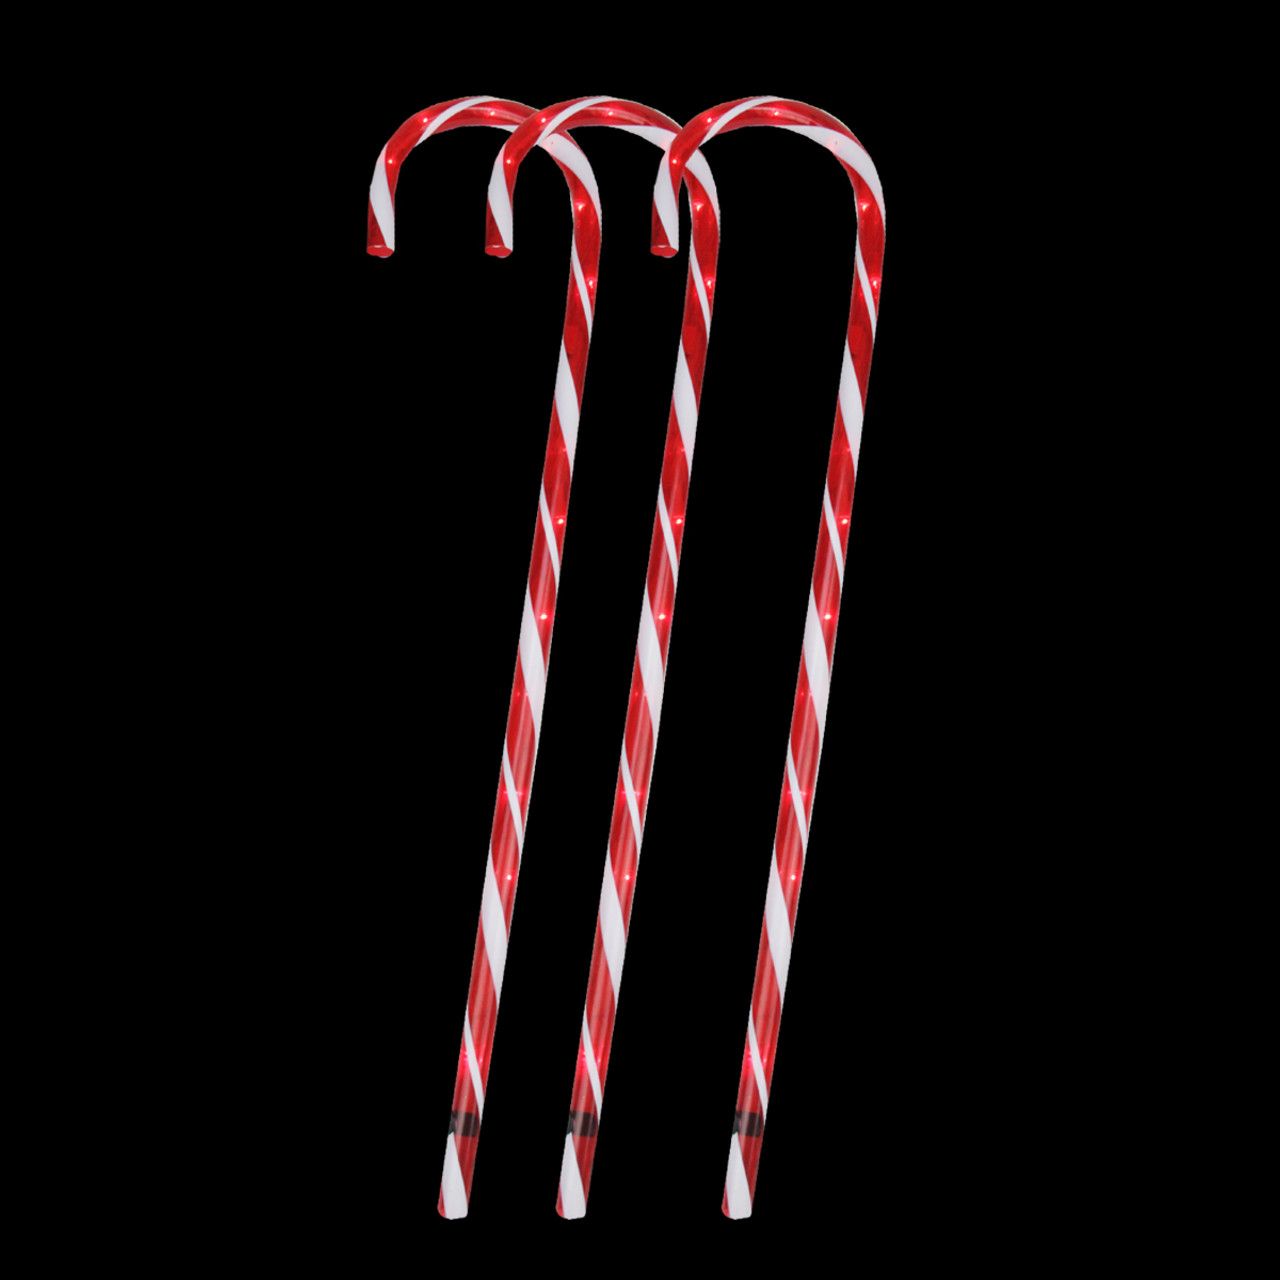 pack of 3 lighted candy cane pathway markers outdoor christmas decorations 28 28103612